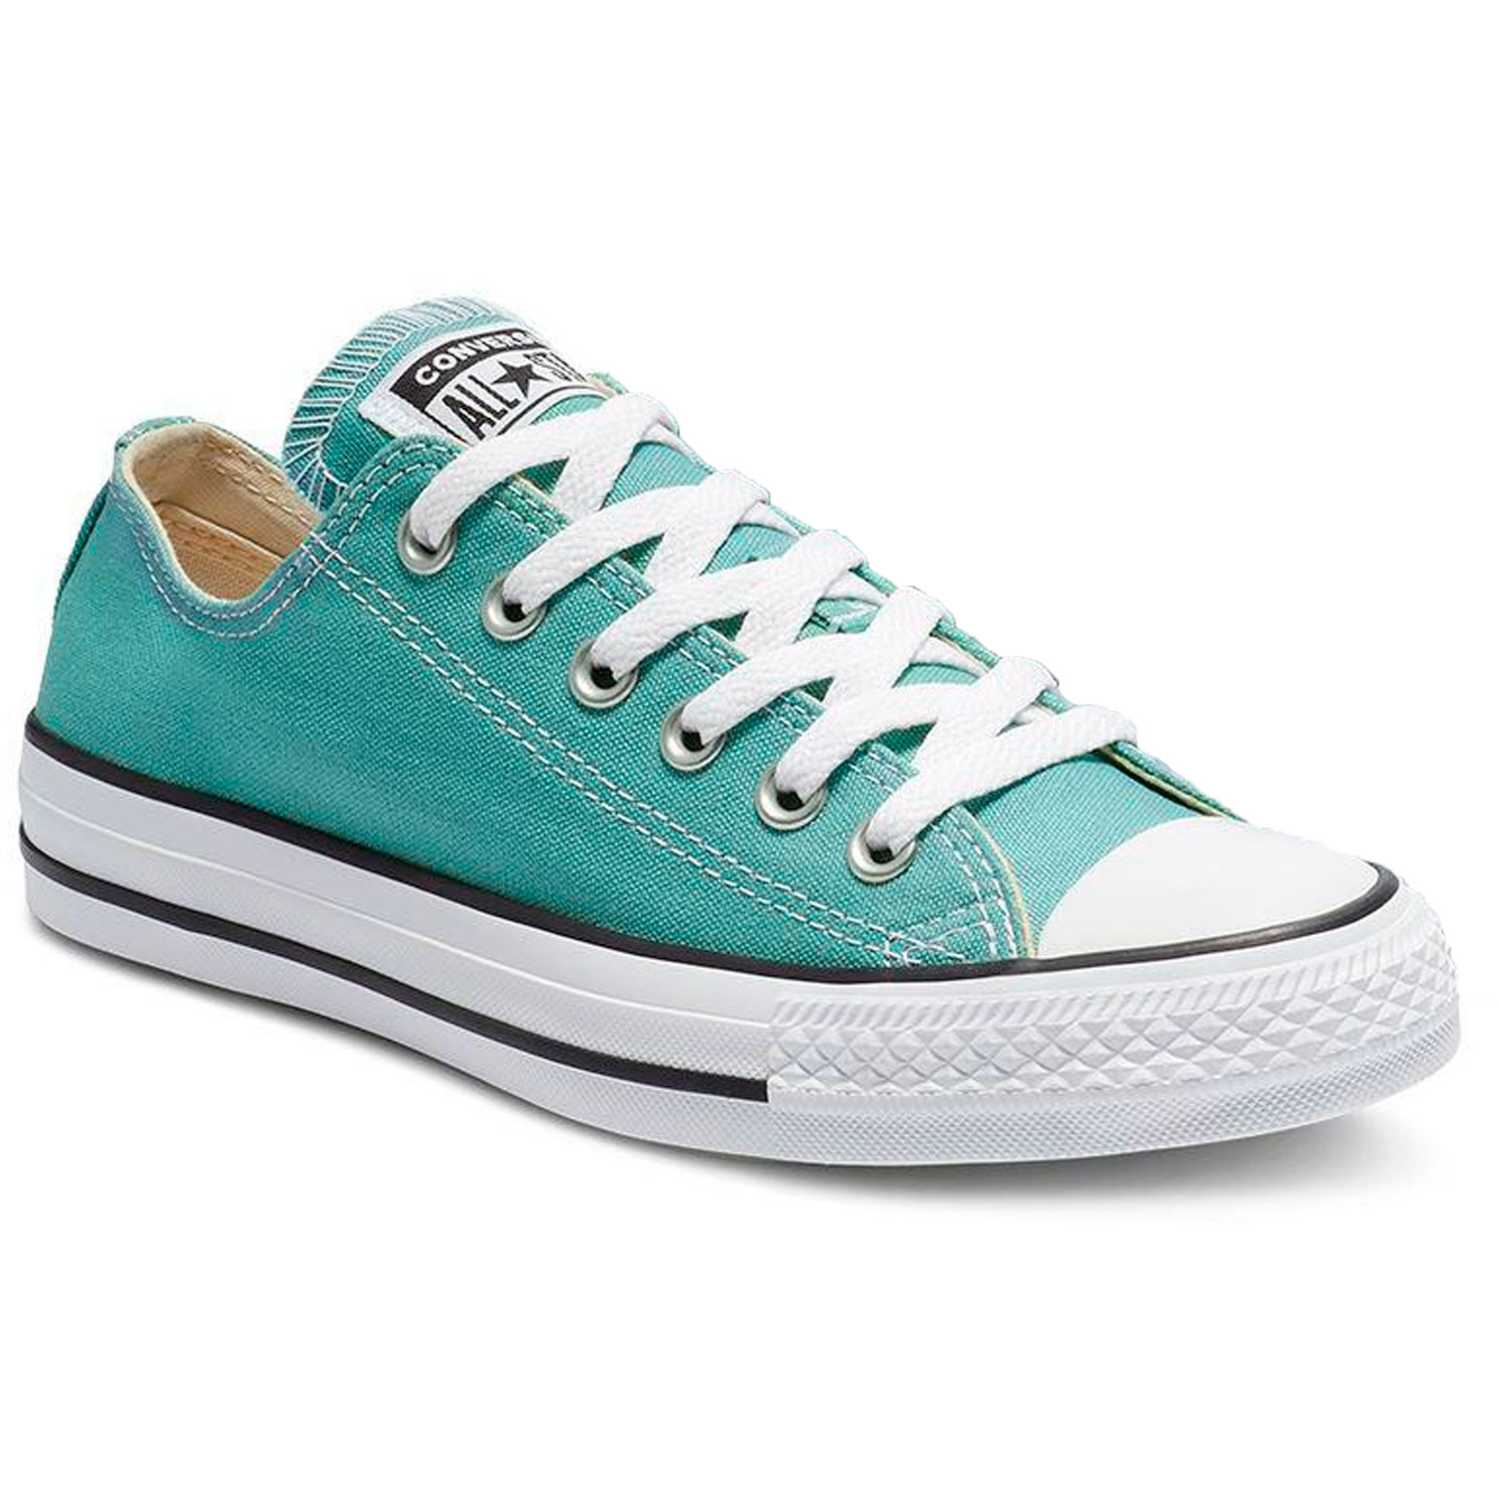 Zapatilla de Jovencita Converse Verde chuck taylor all star seasonal ox